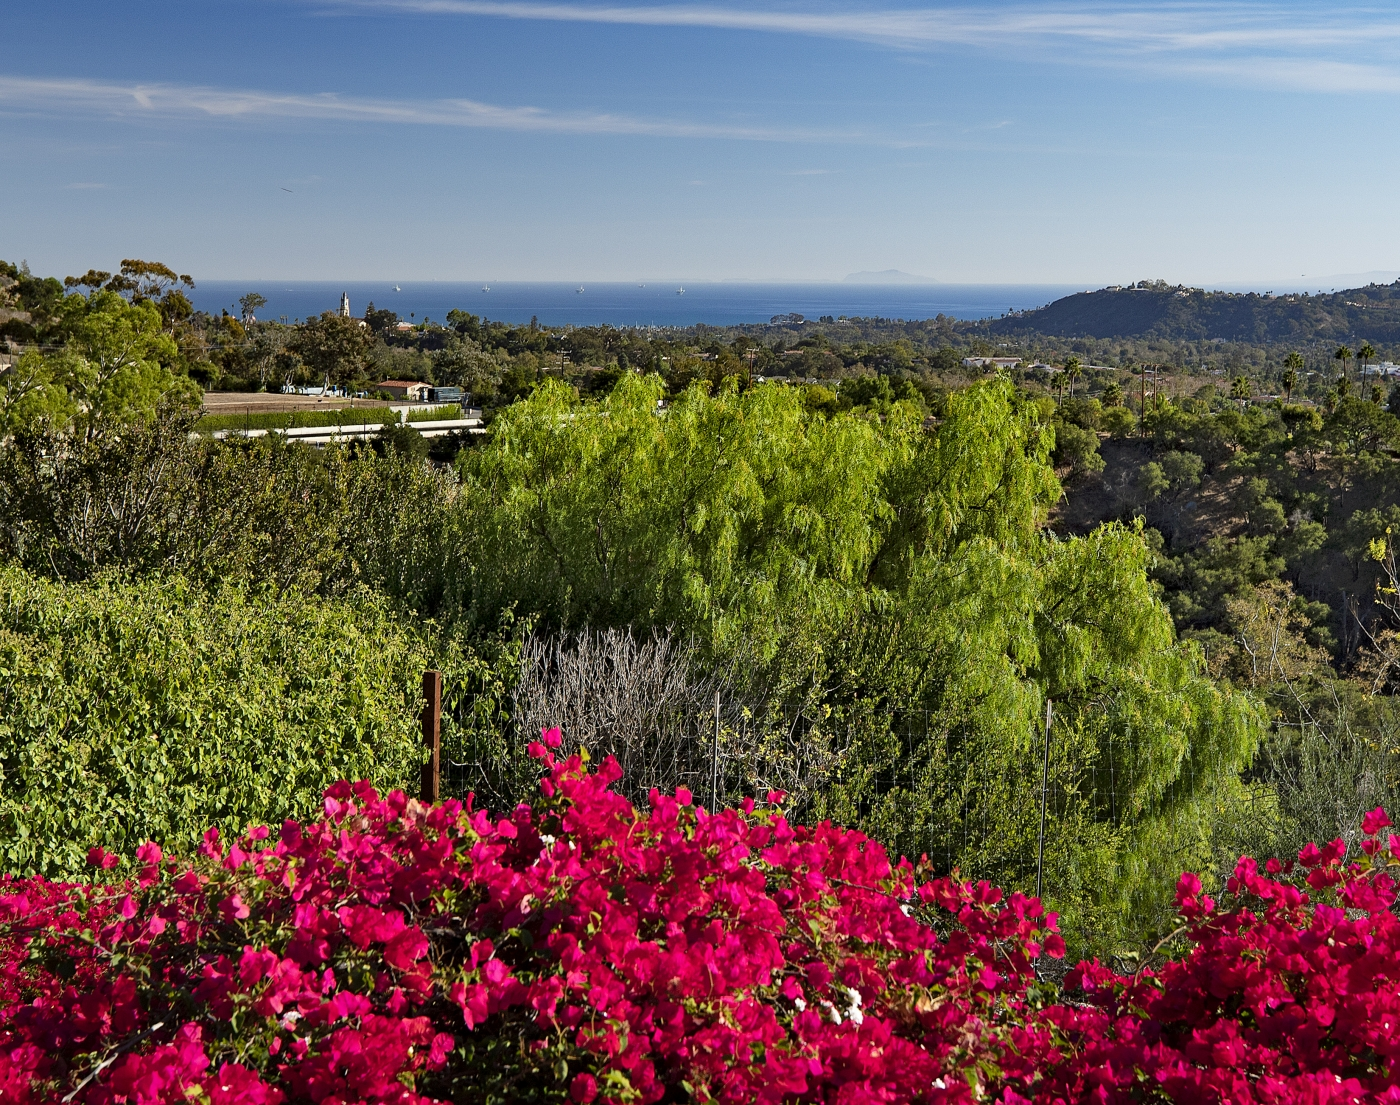 Santa Barbara's Coast, Sparkling Ocean, and Majestic Channel Islands